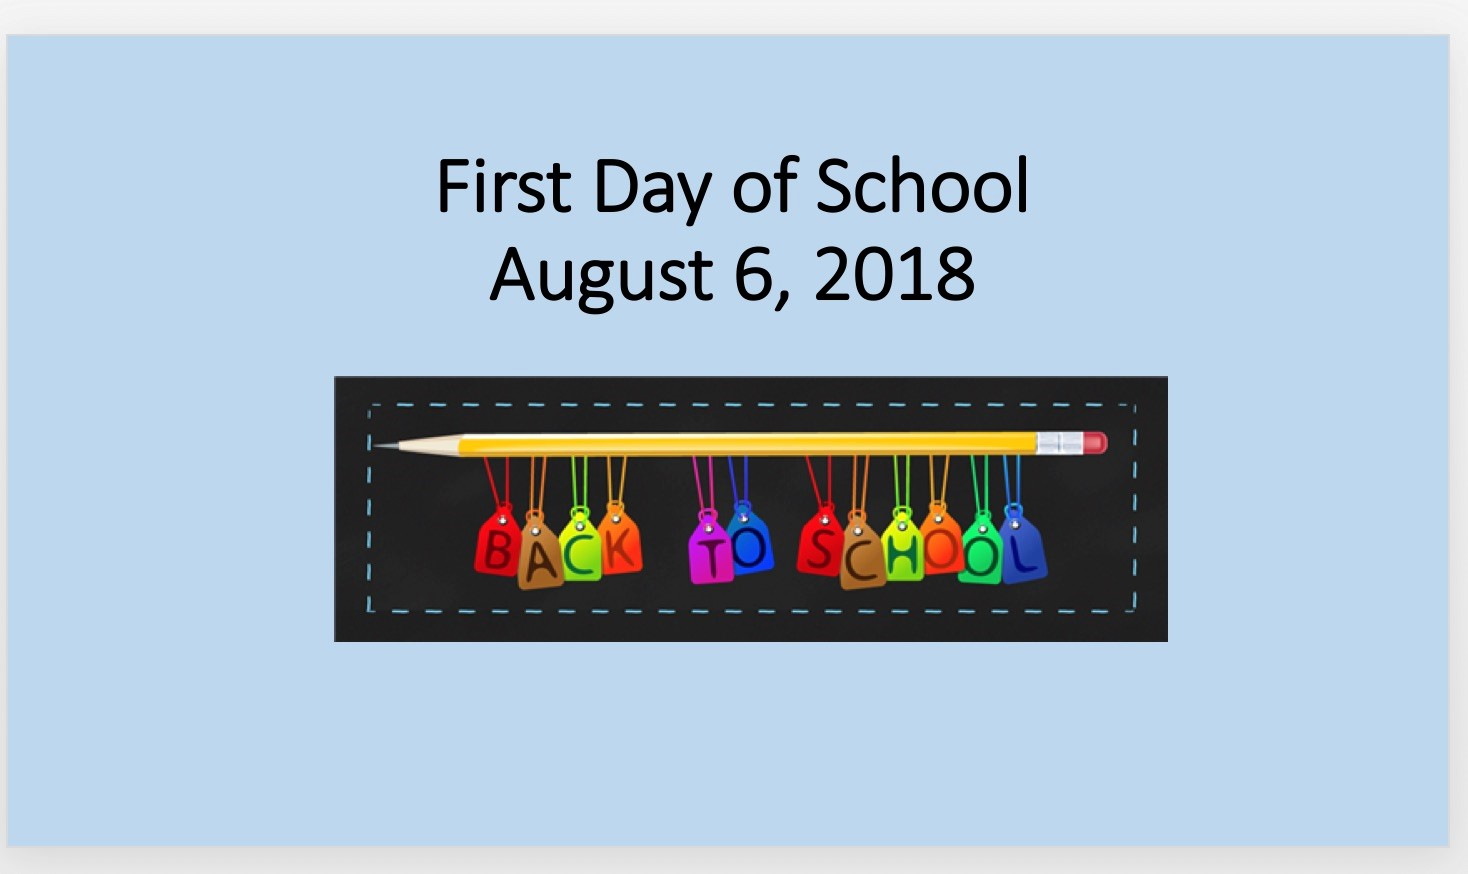 First Day of School August 6, 2018